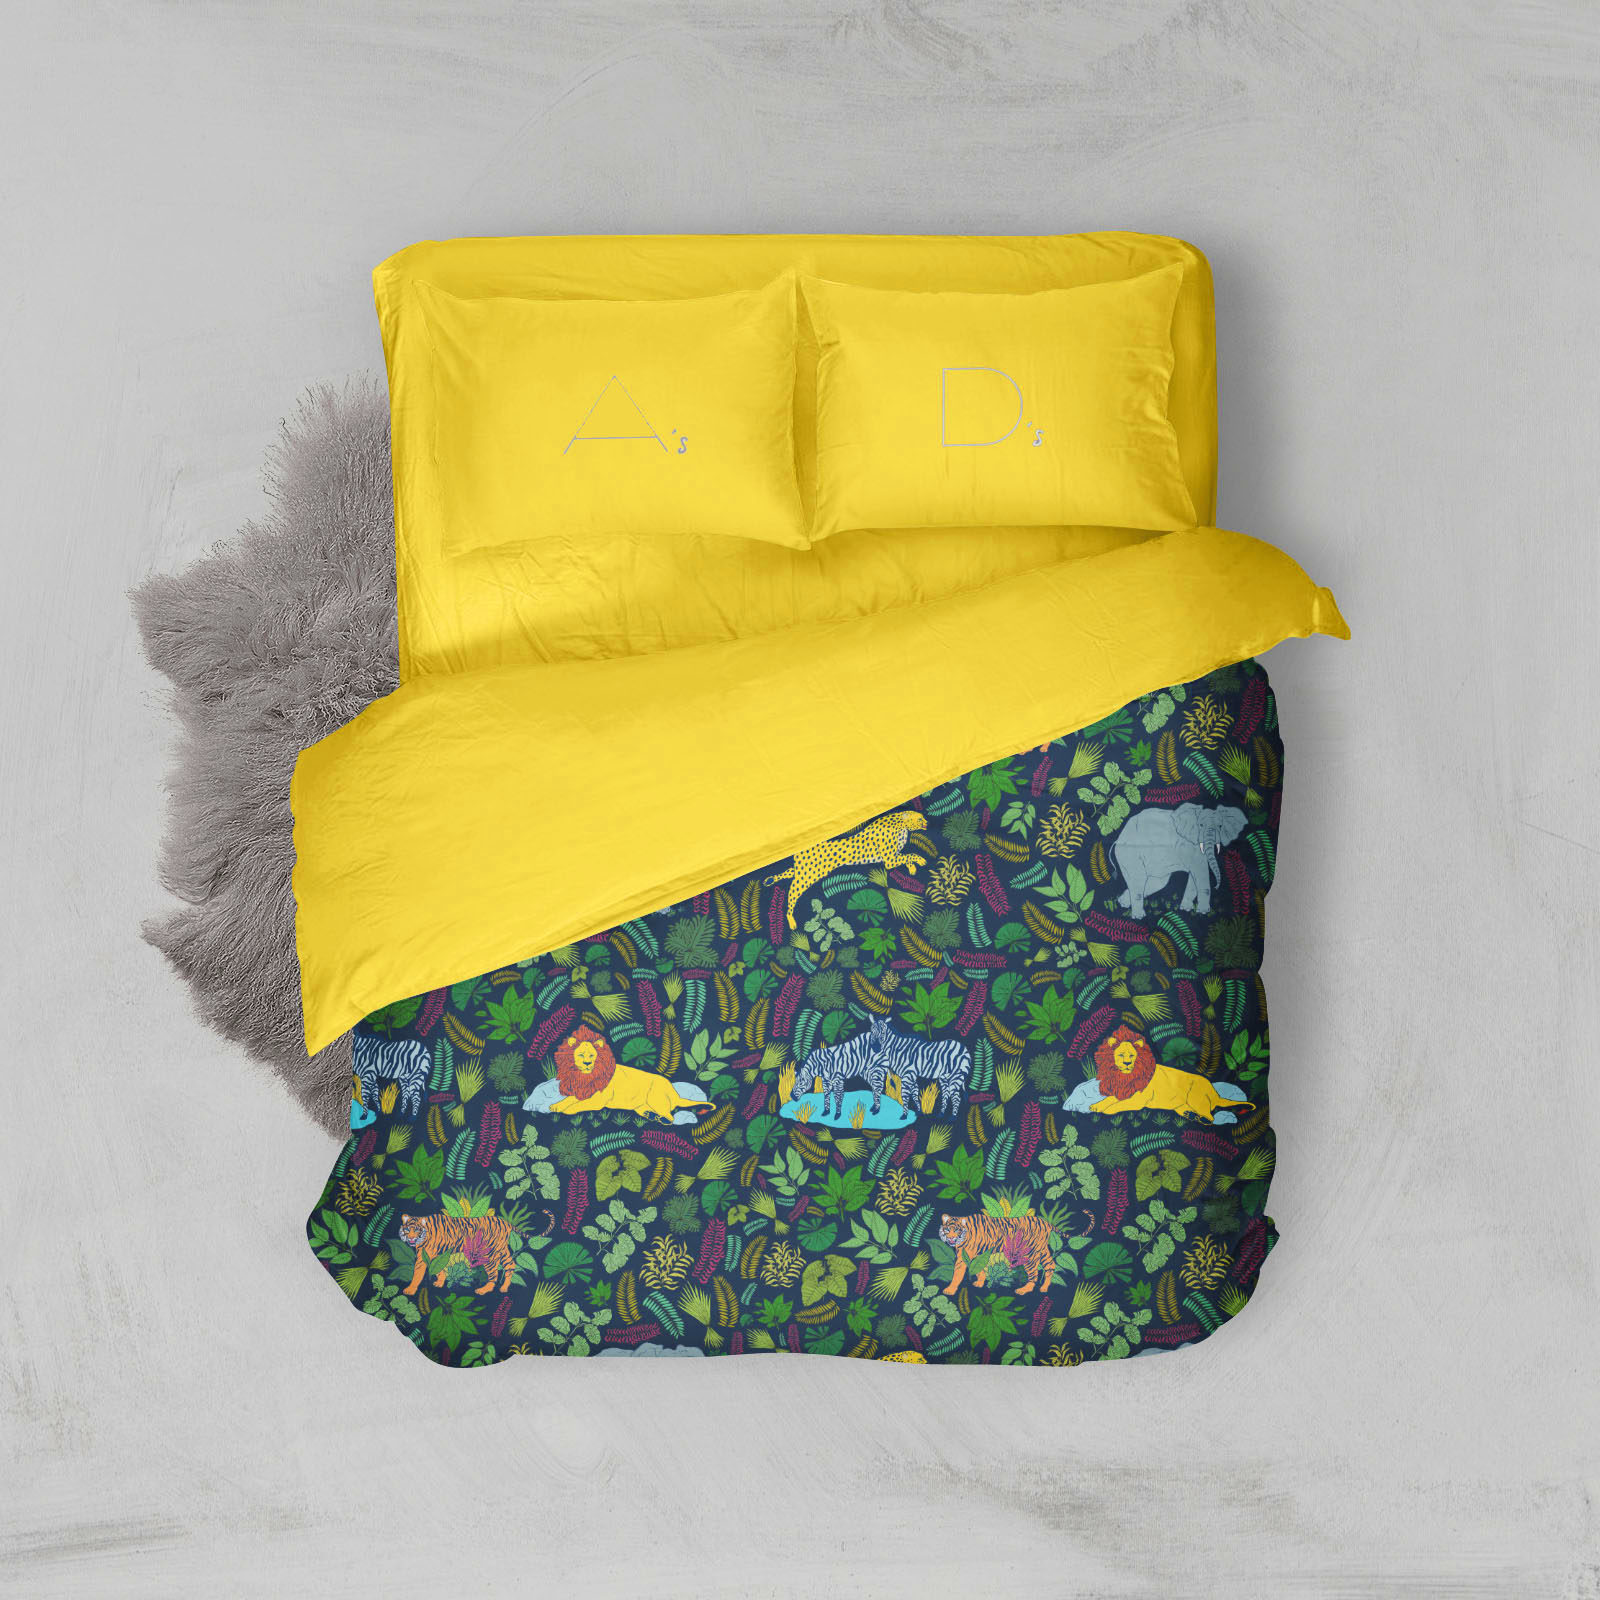 bed and pillow mock up 2.jpg